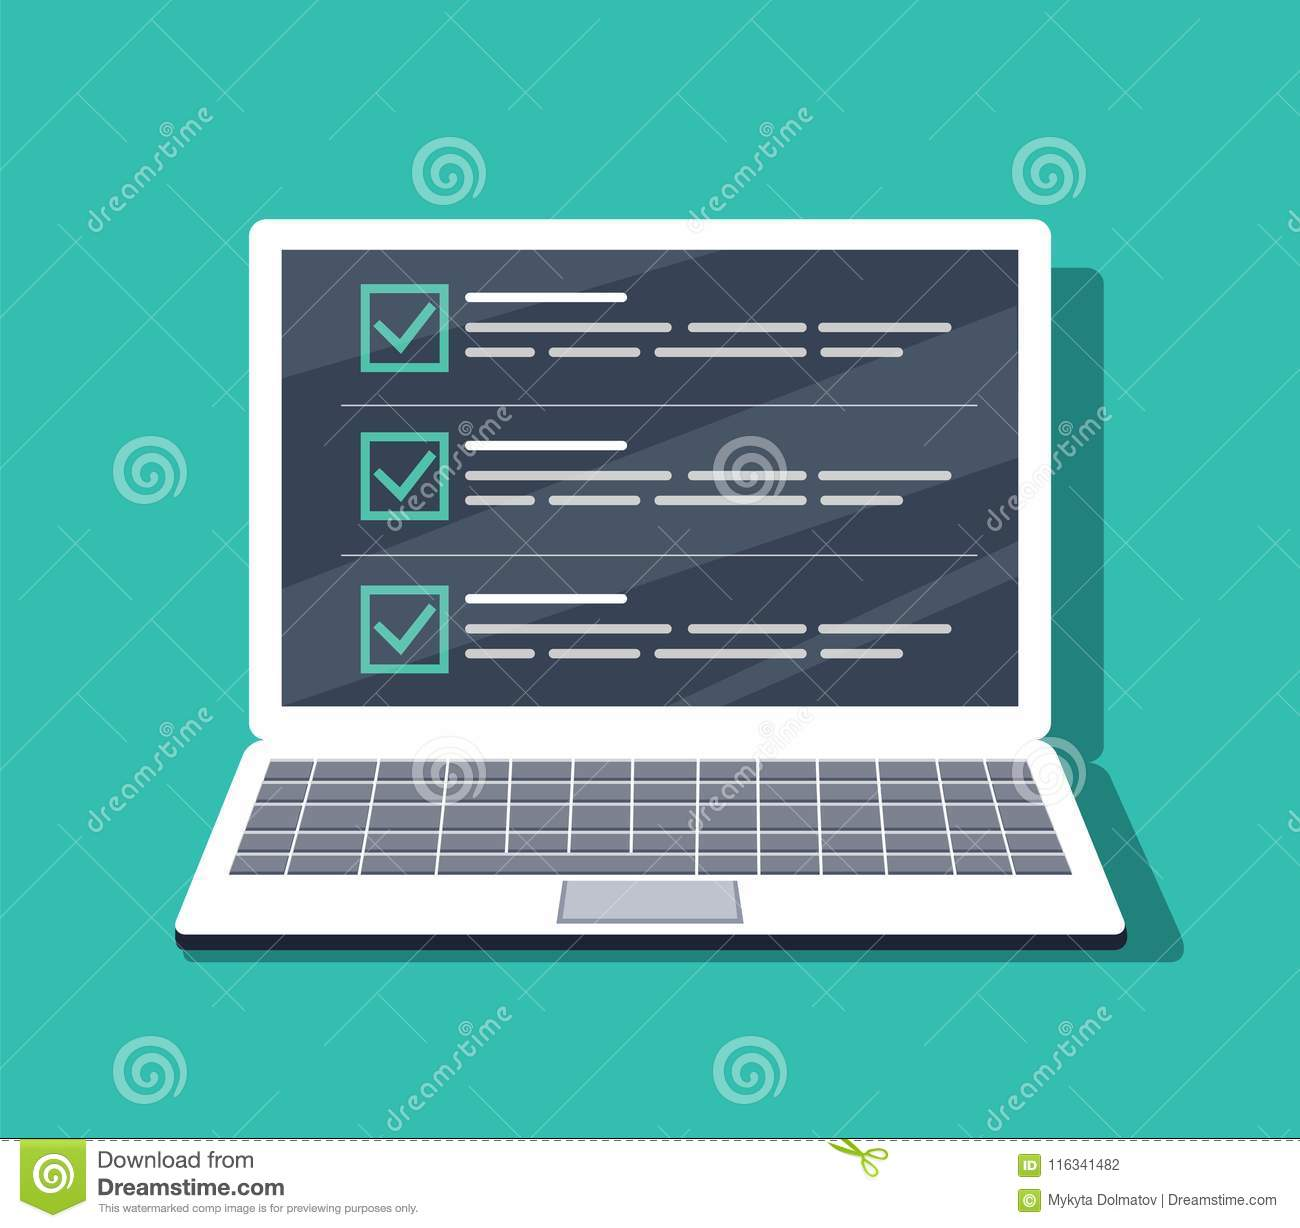 Checklist On The Laptop Screen Isolated Vector Illustration In Flat Style Design For Web Site Banners Stock Vector Illustration Of Icon Laptop 116341482